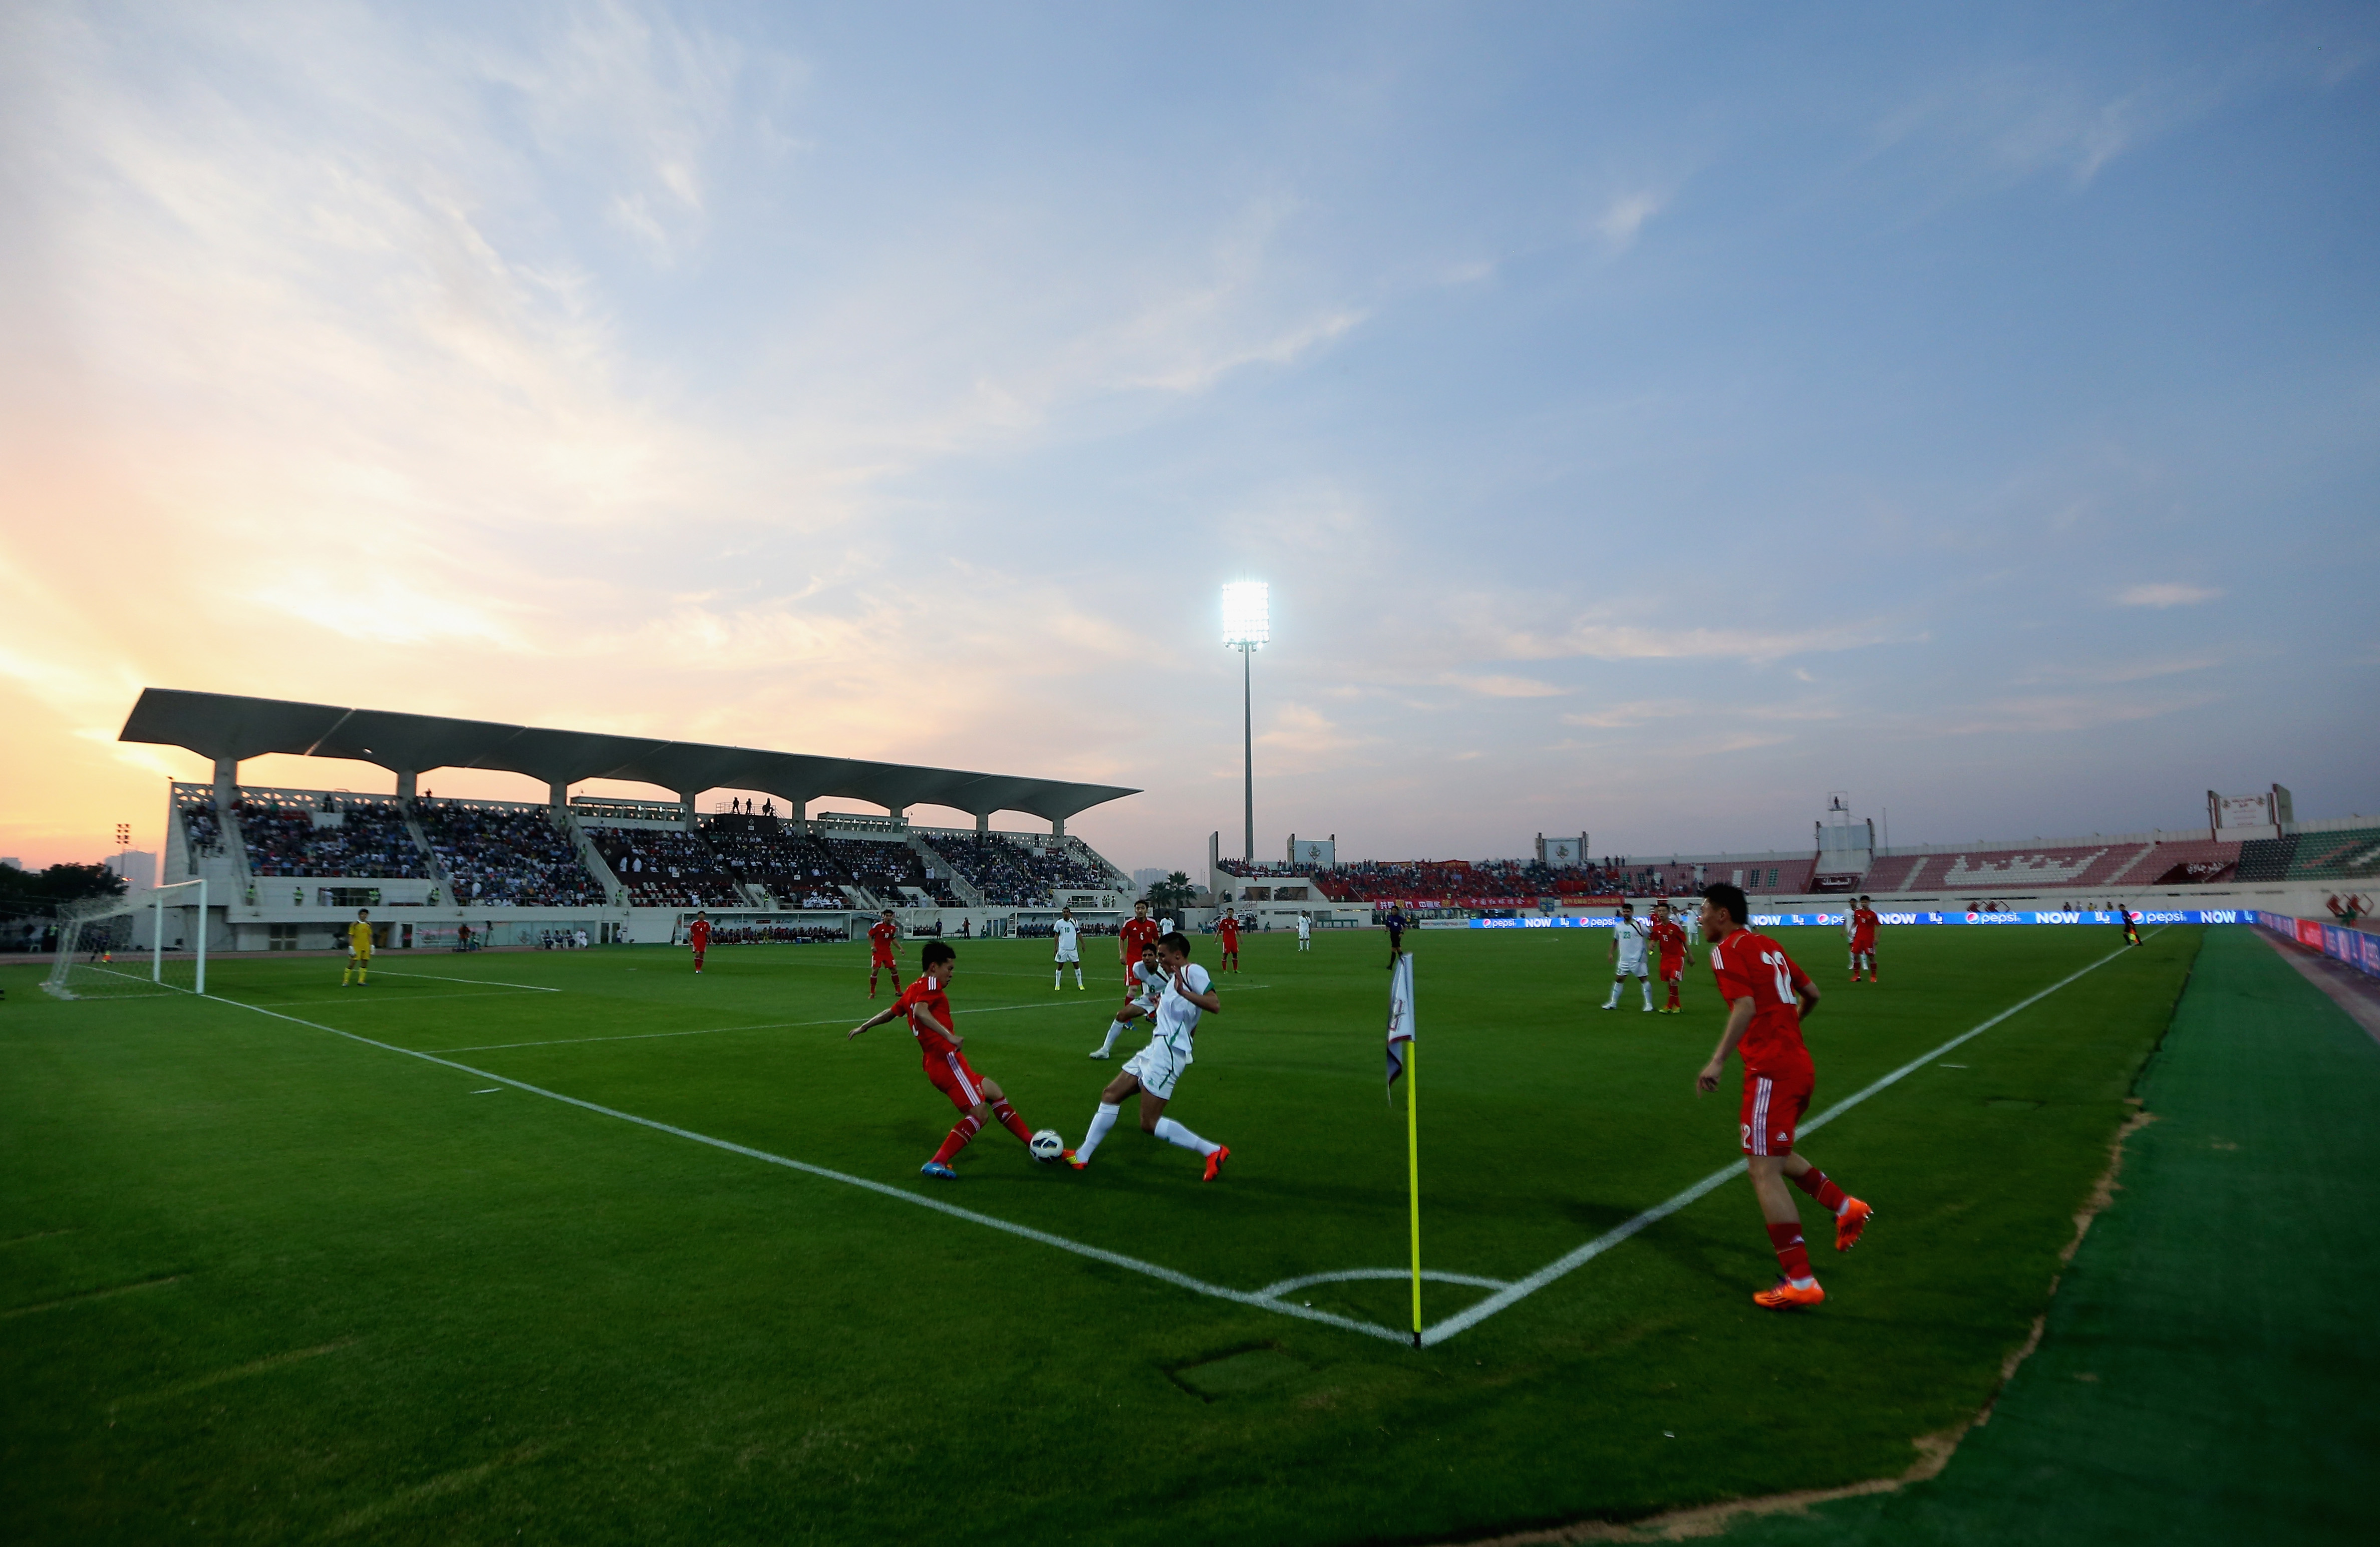 Al Sharjah Football Stadium